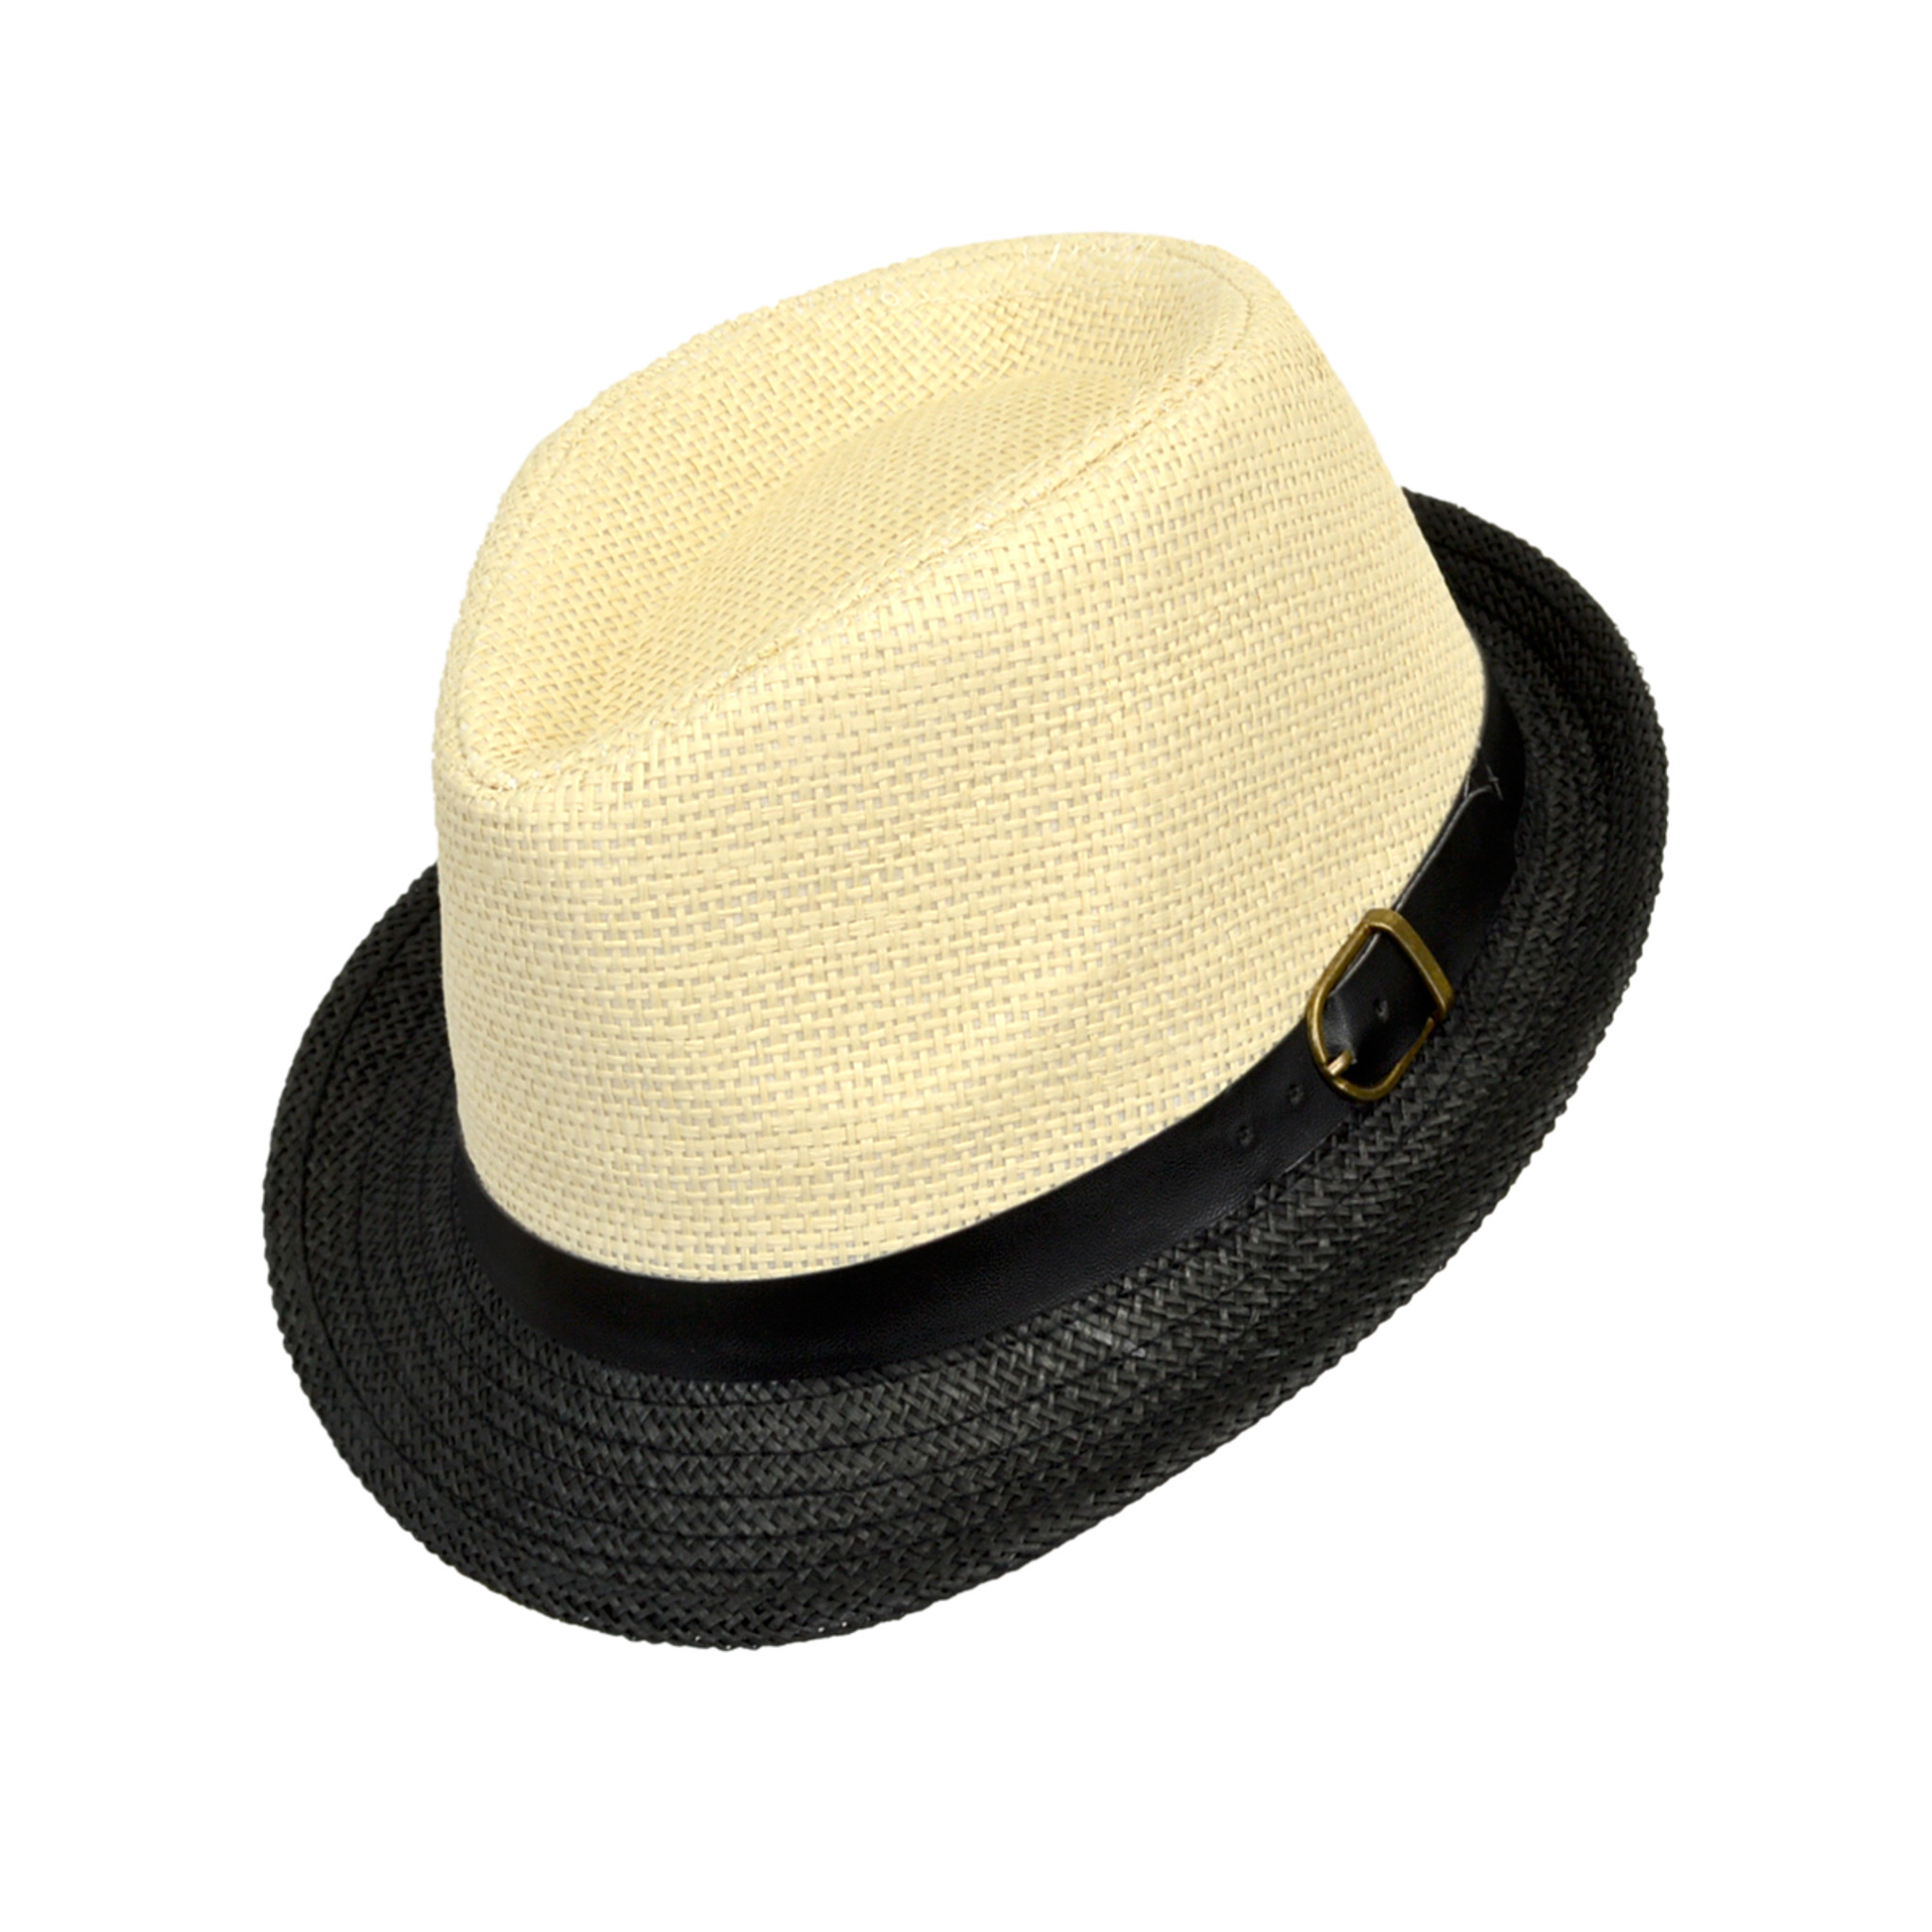 c72fda08591 Boxed Gifts · Home · Children · Boy's Spring/Summer Cream Straw Fedora Hats  with Black Band ...